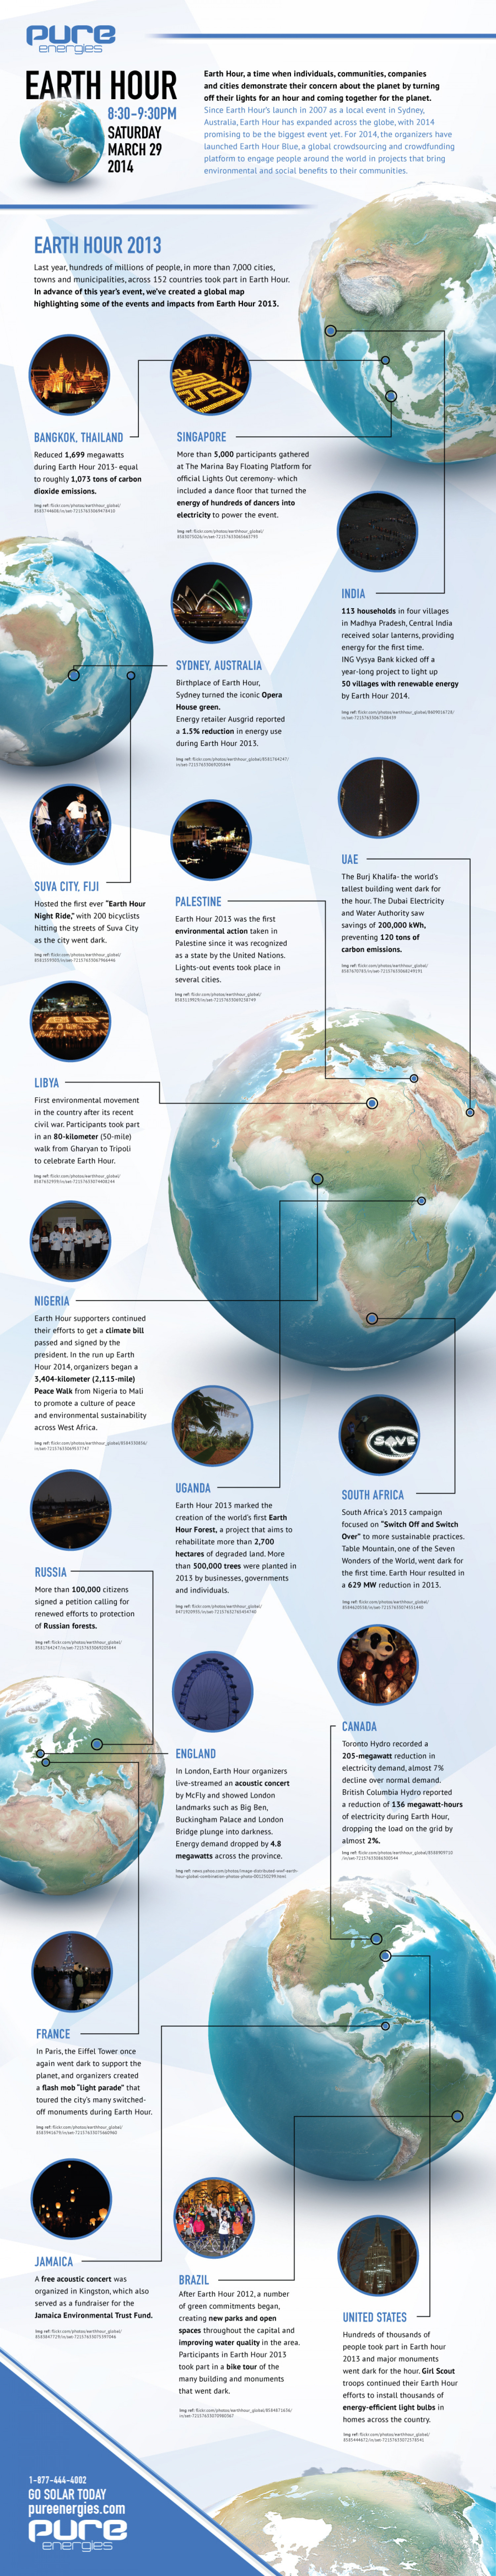 Earth Hour 2013: Global Events  Infographic